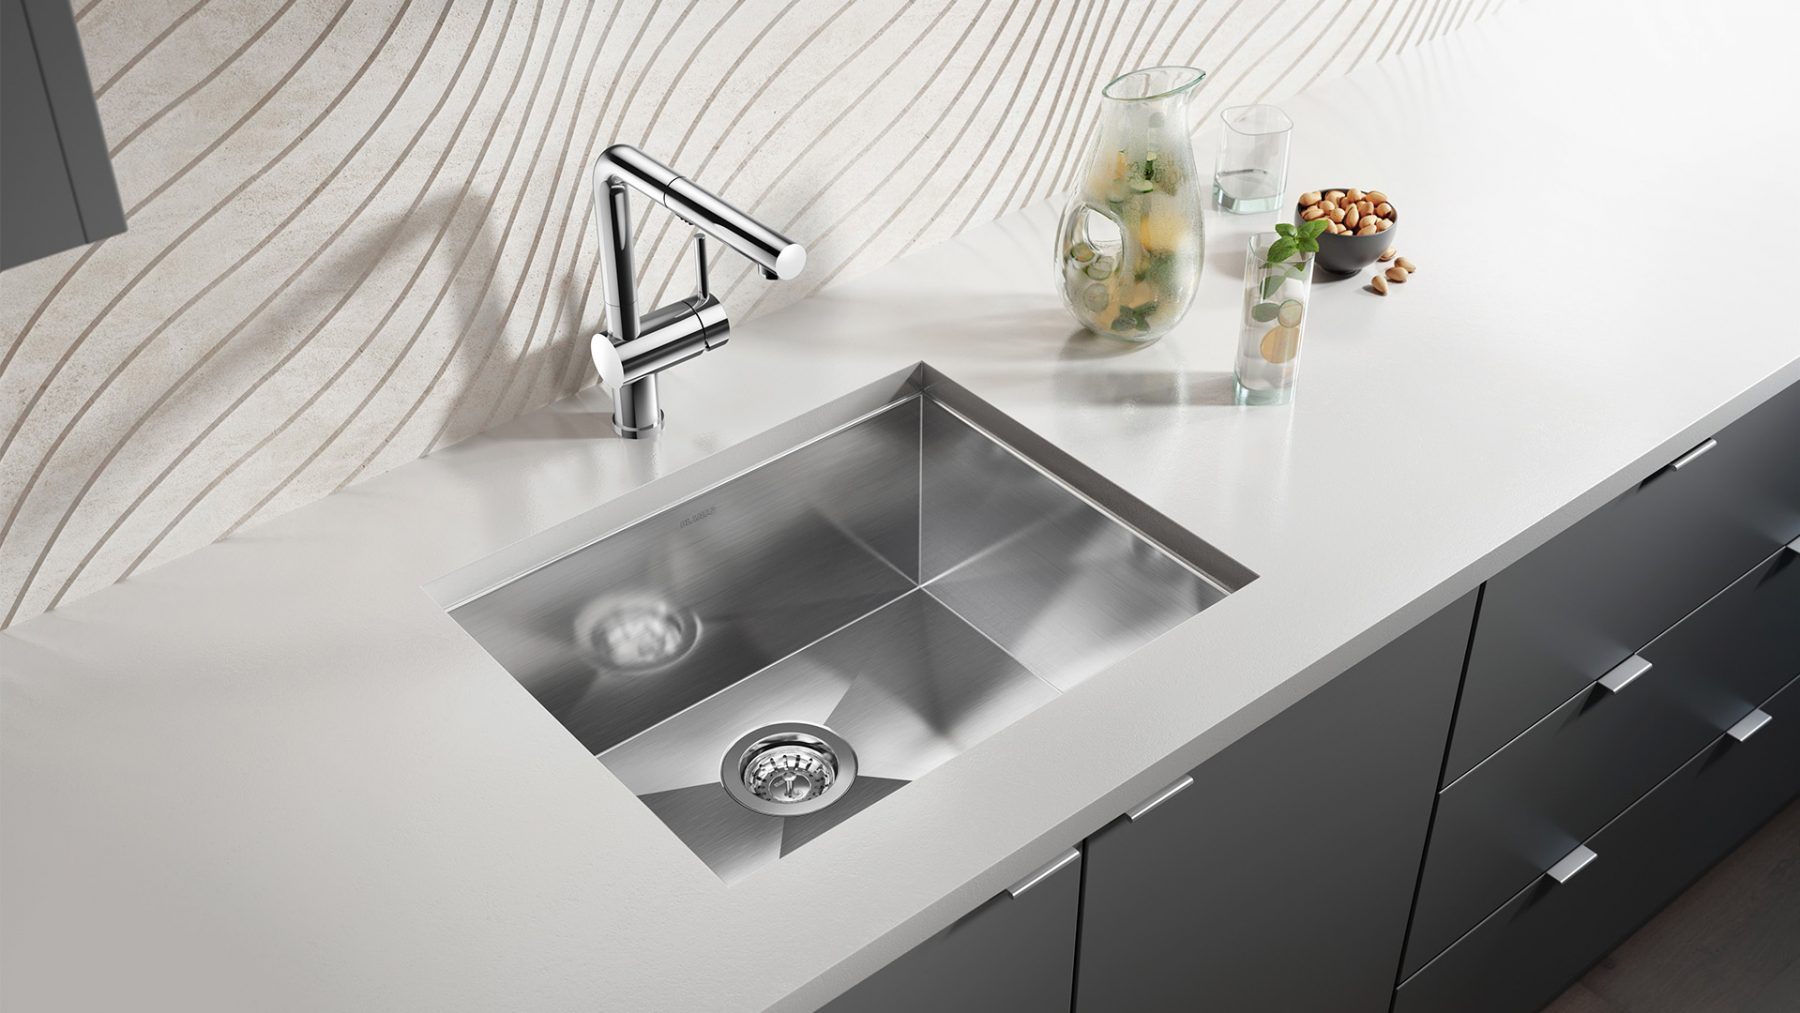 3d imagery maker modern sink and faucet